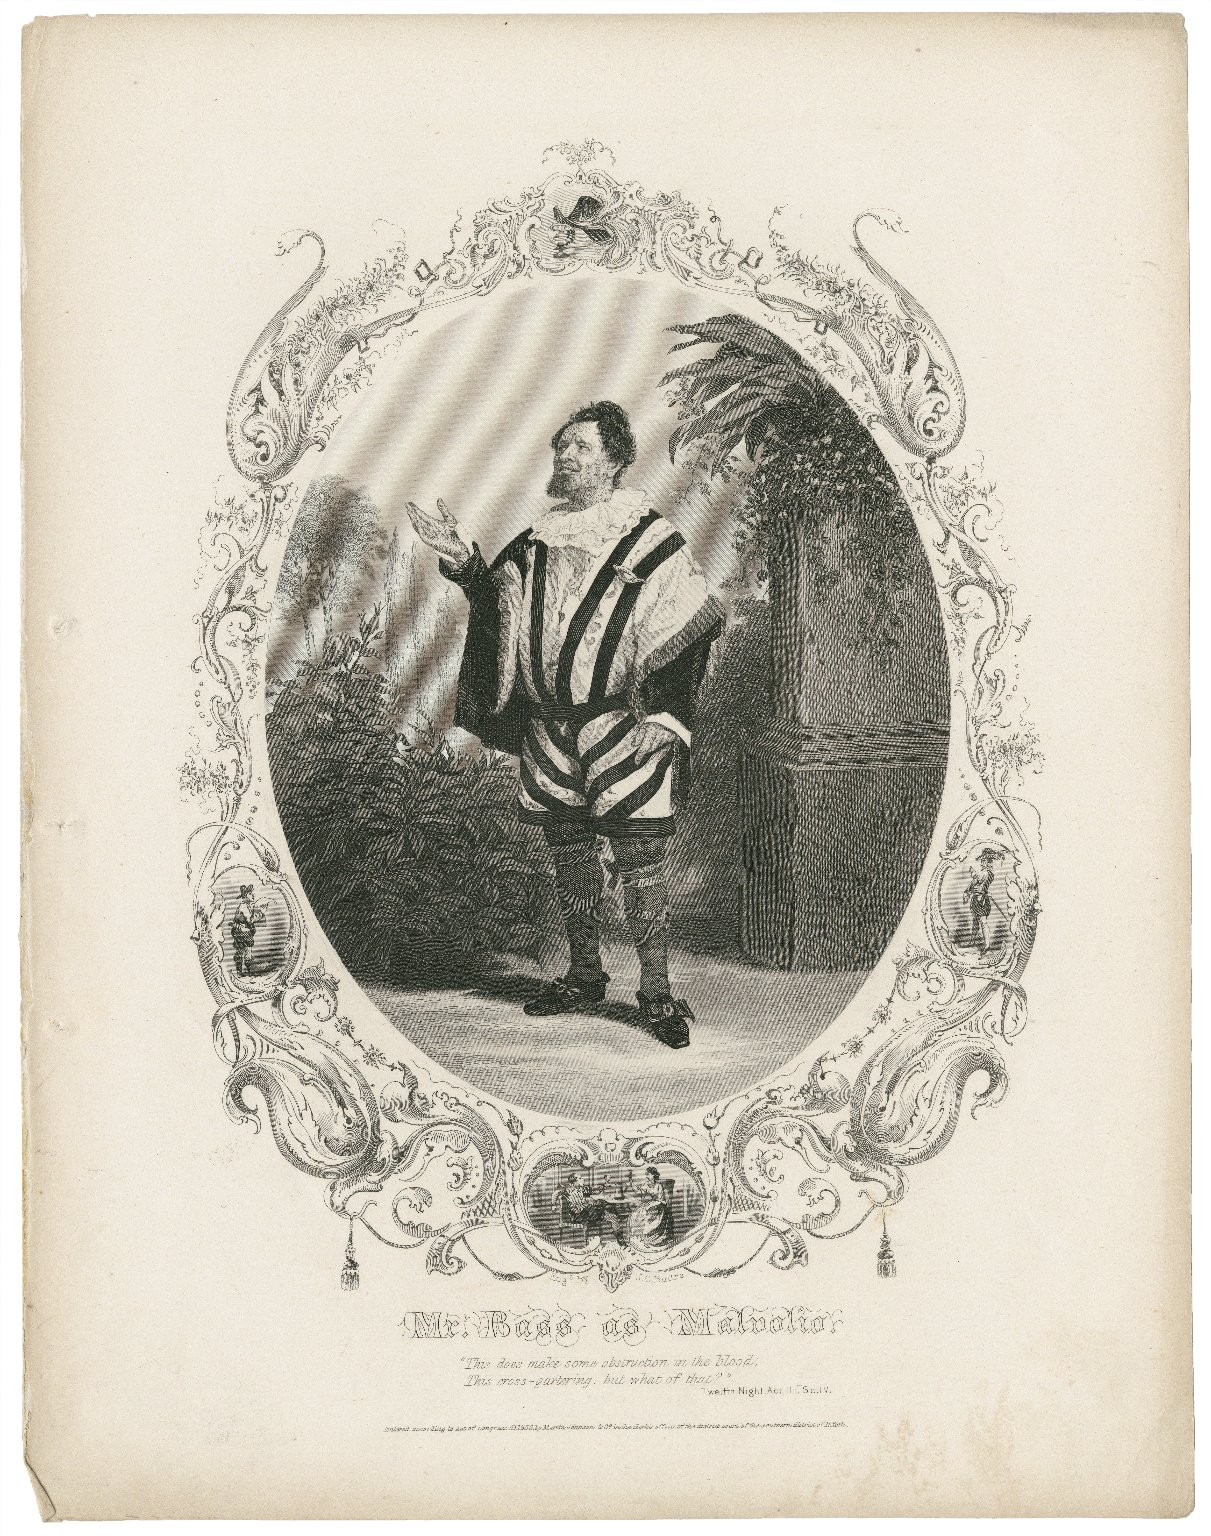 Mr. Bass as Malvolio ... [graphic] / eng'd by J.C. Buttre.